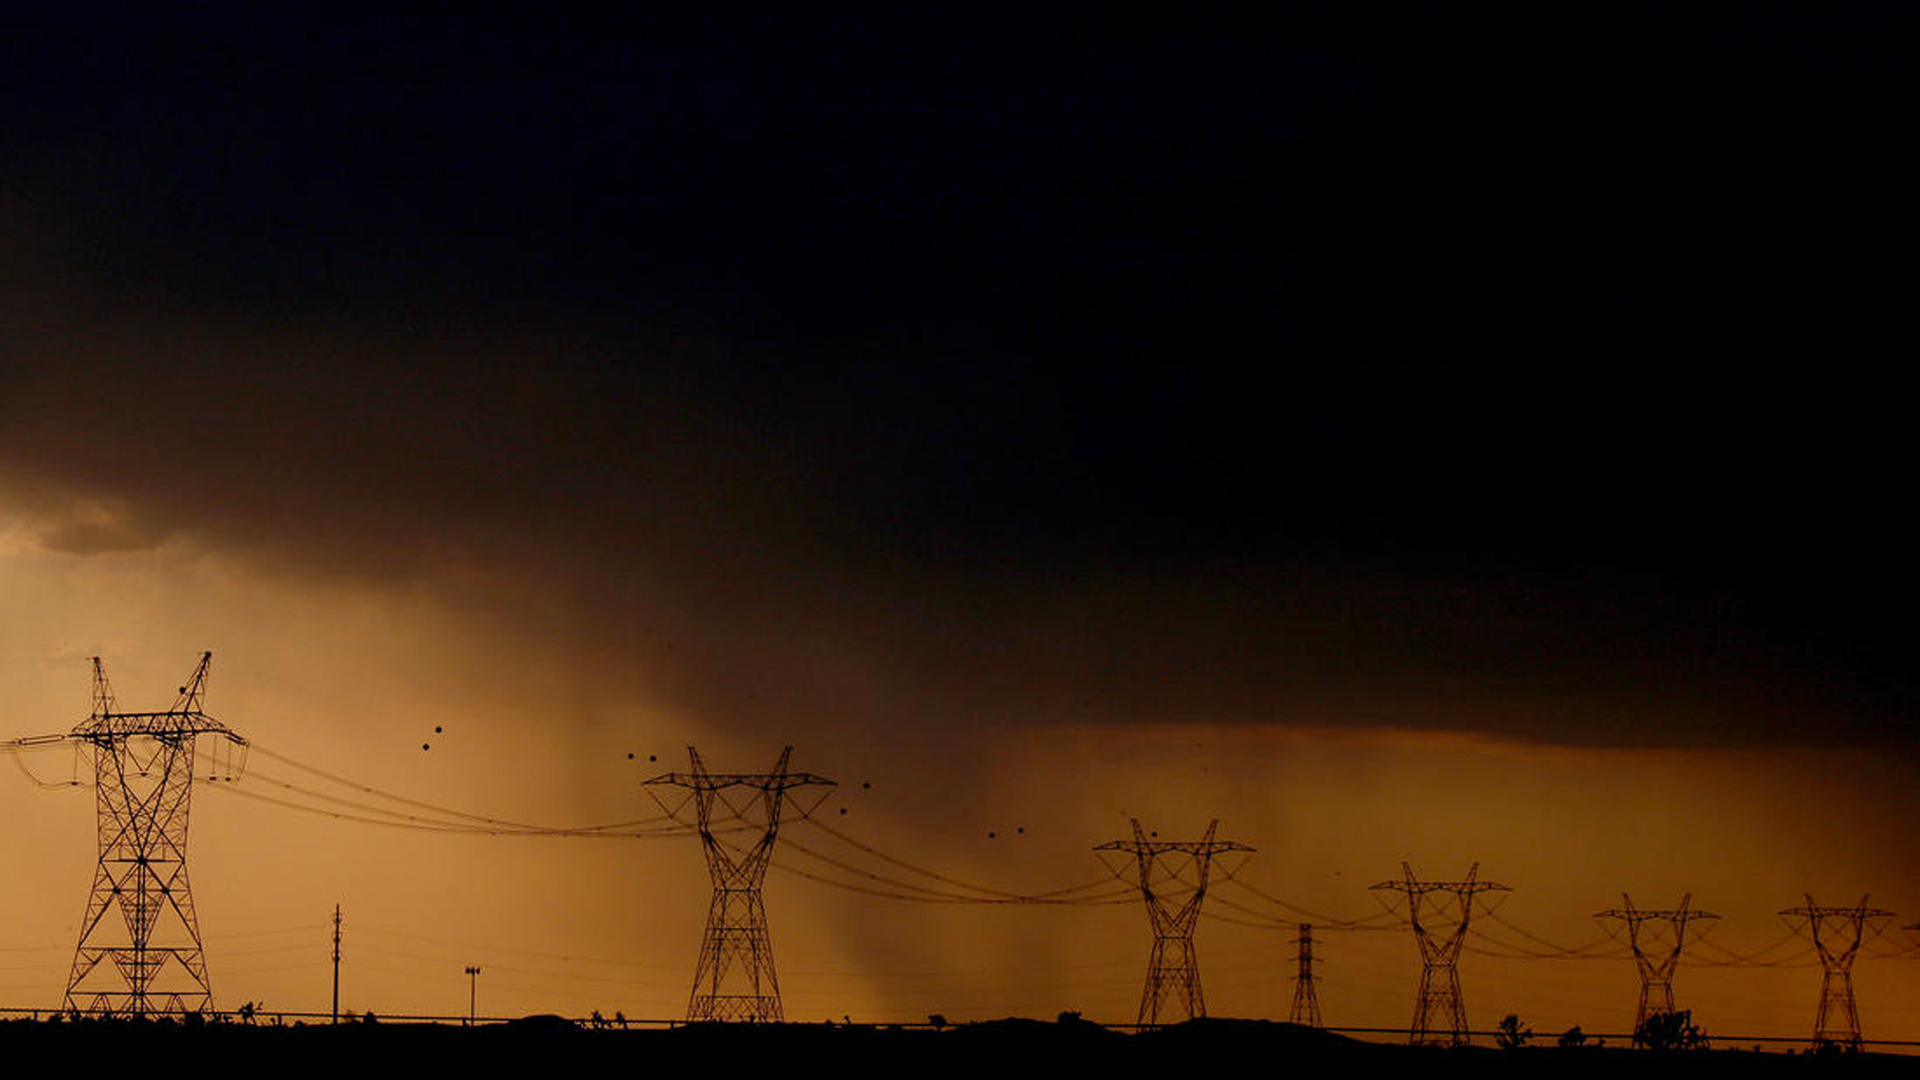 Rain falls behind power lines near Adelanto at the end of a scorching hot day. (Credit: Luis Sinco / Los Angeles Times)